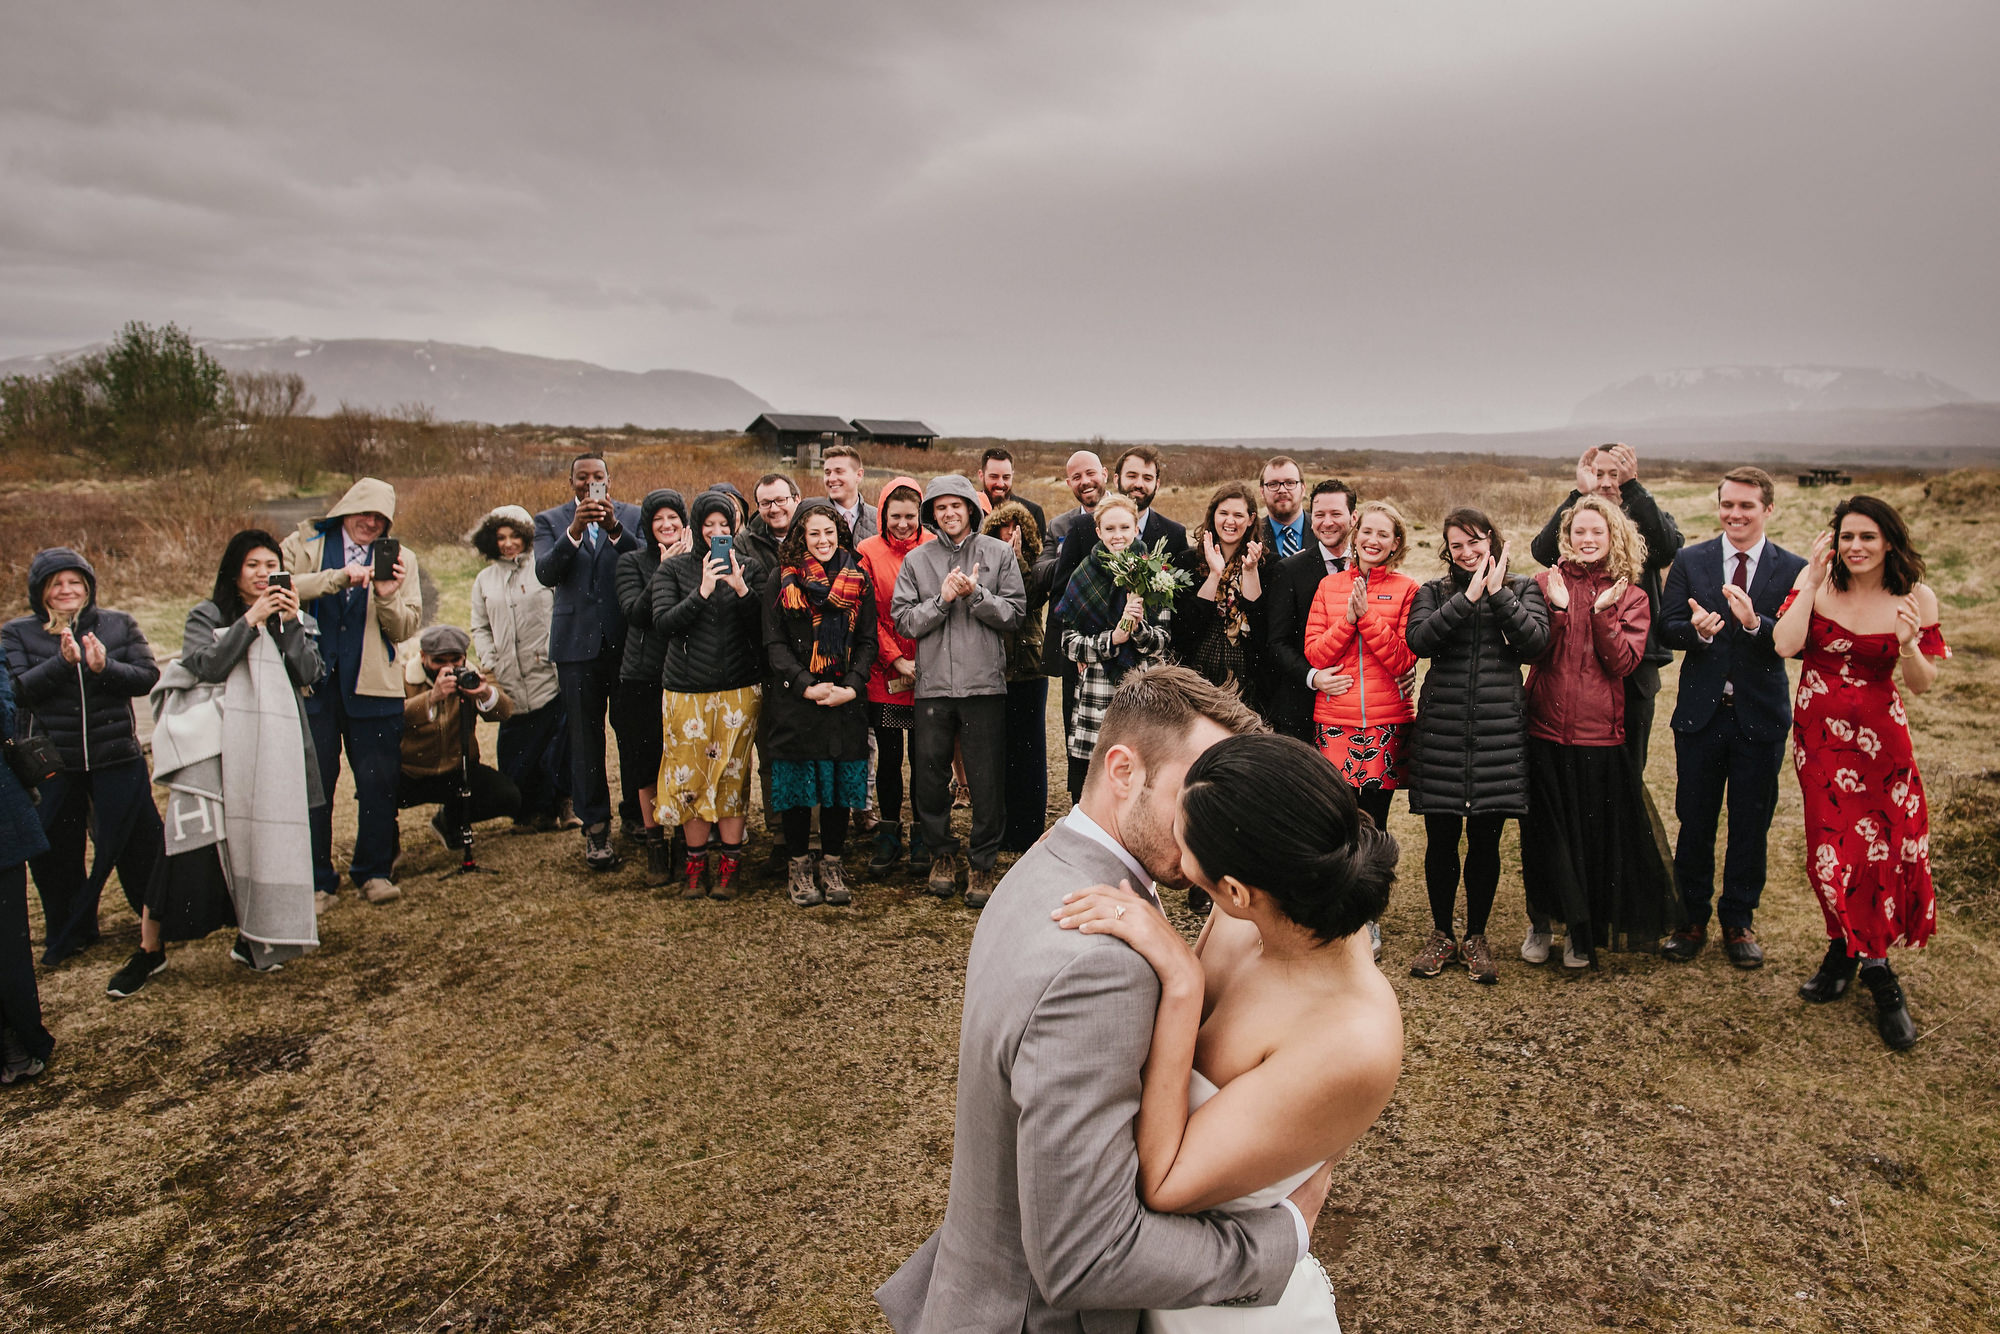 NineDots best wedding photography 2017 - Andy Gaines